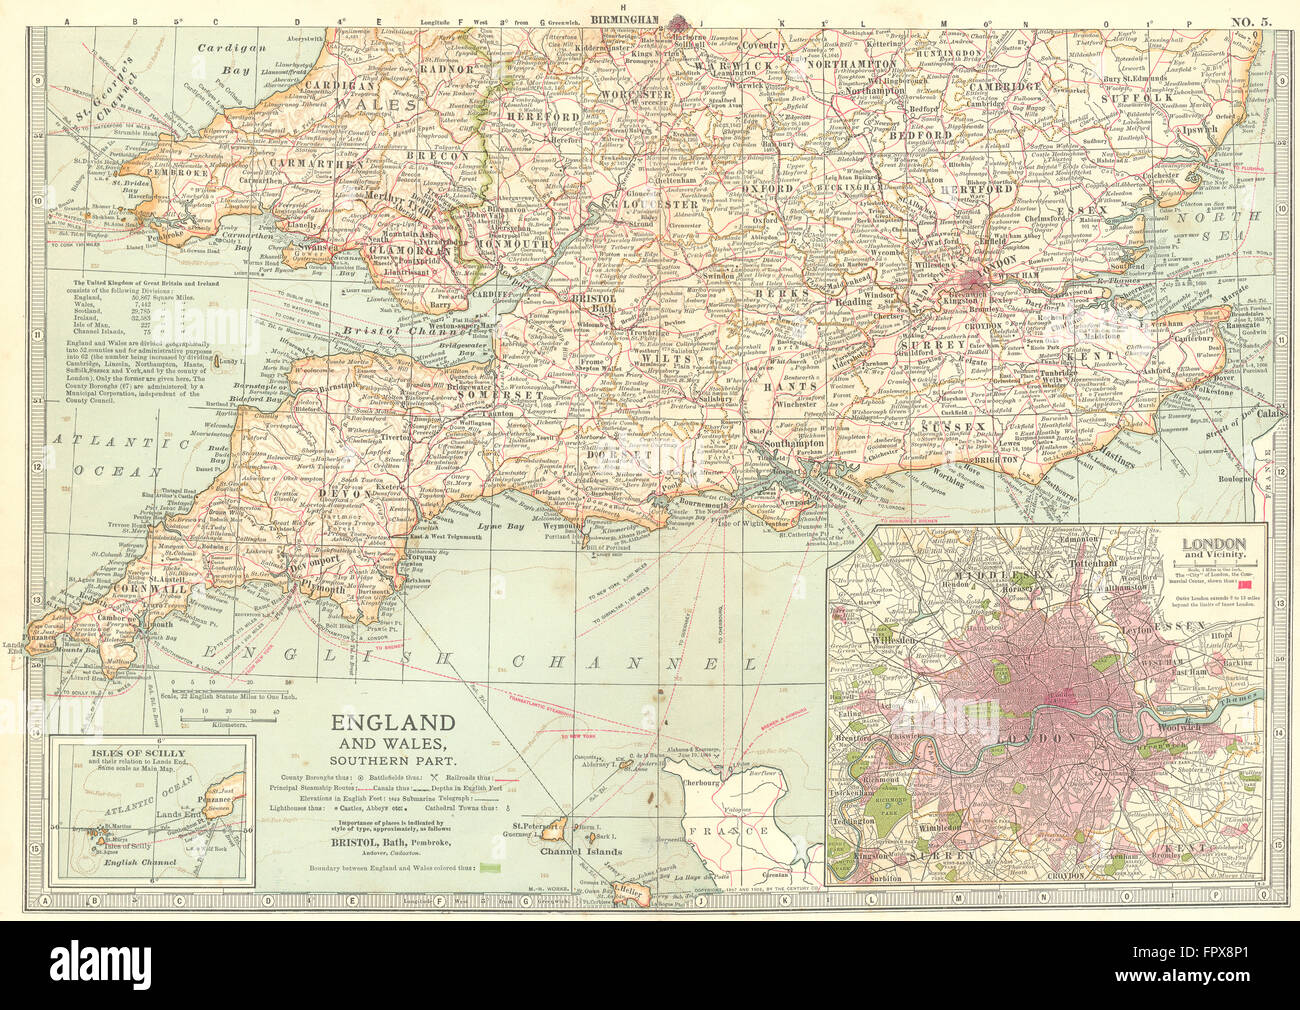 Map Of South England.South England Map Stock Photos South England Map Stock Images Alamy